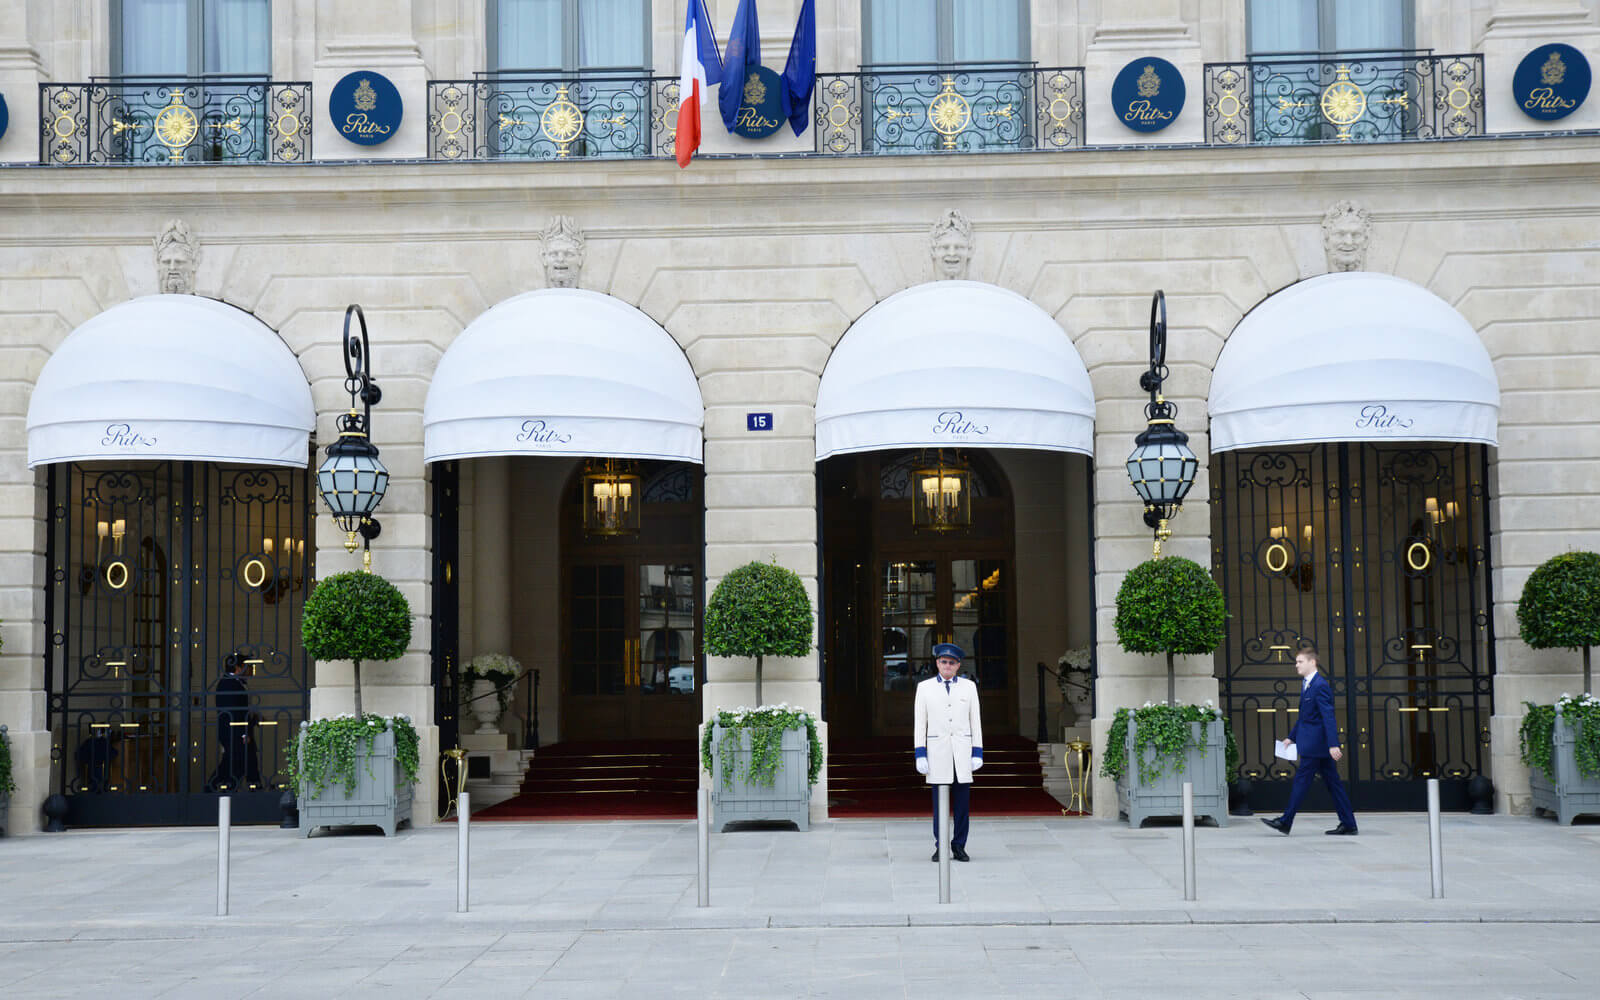 Hotel Ritz in Paris.